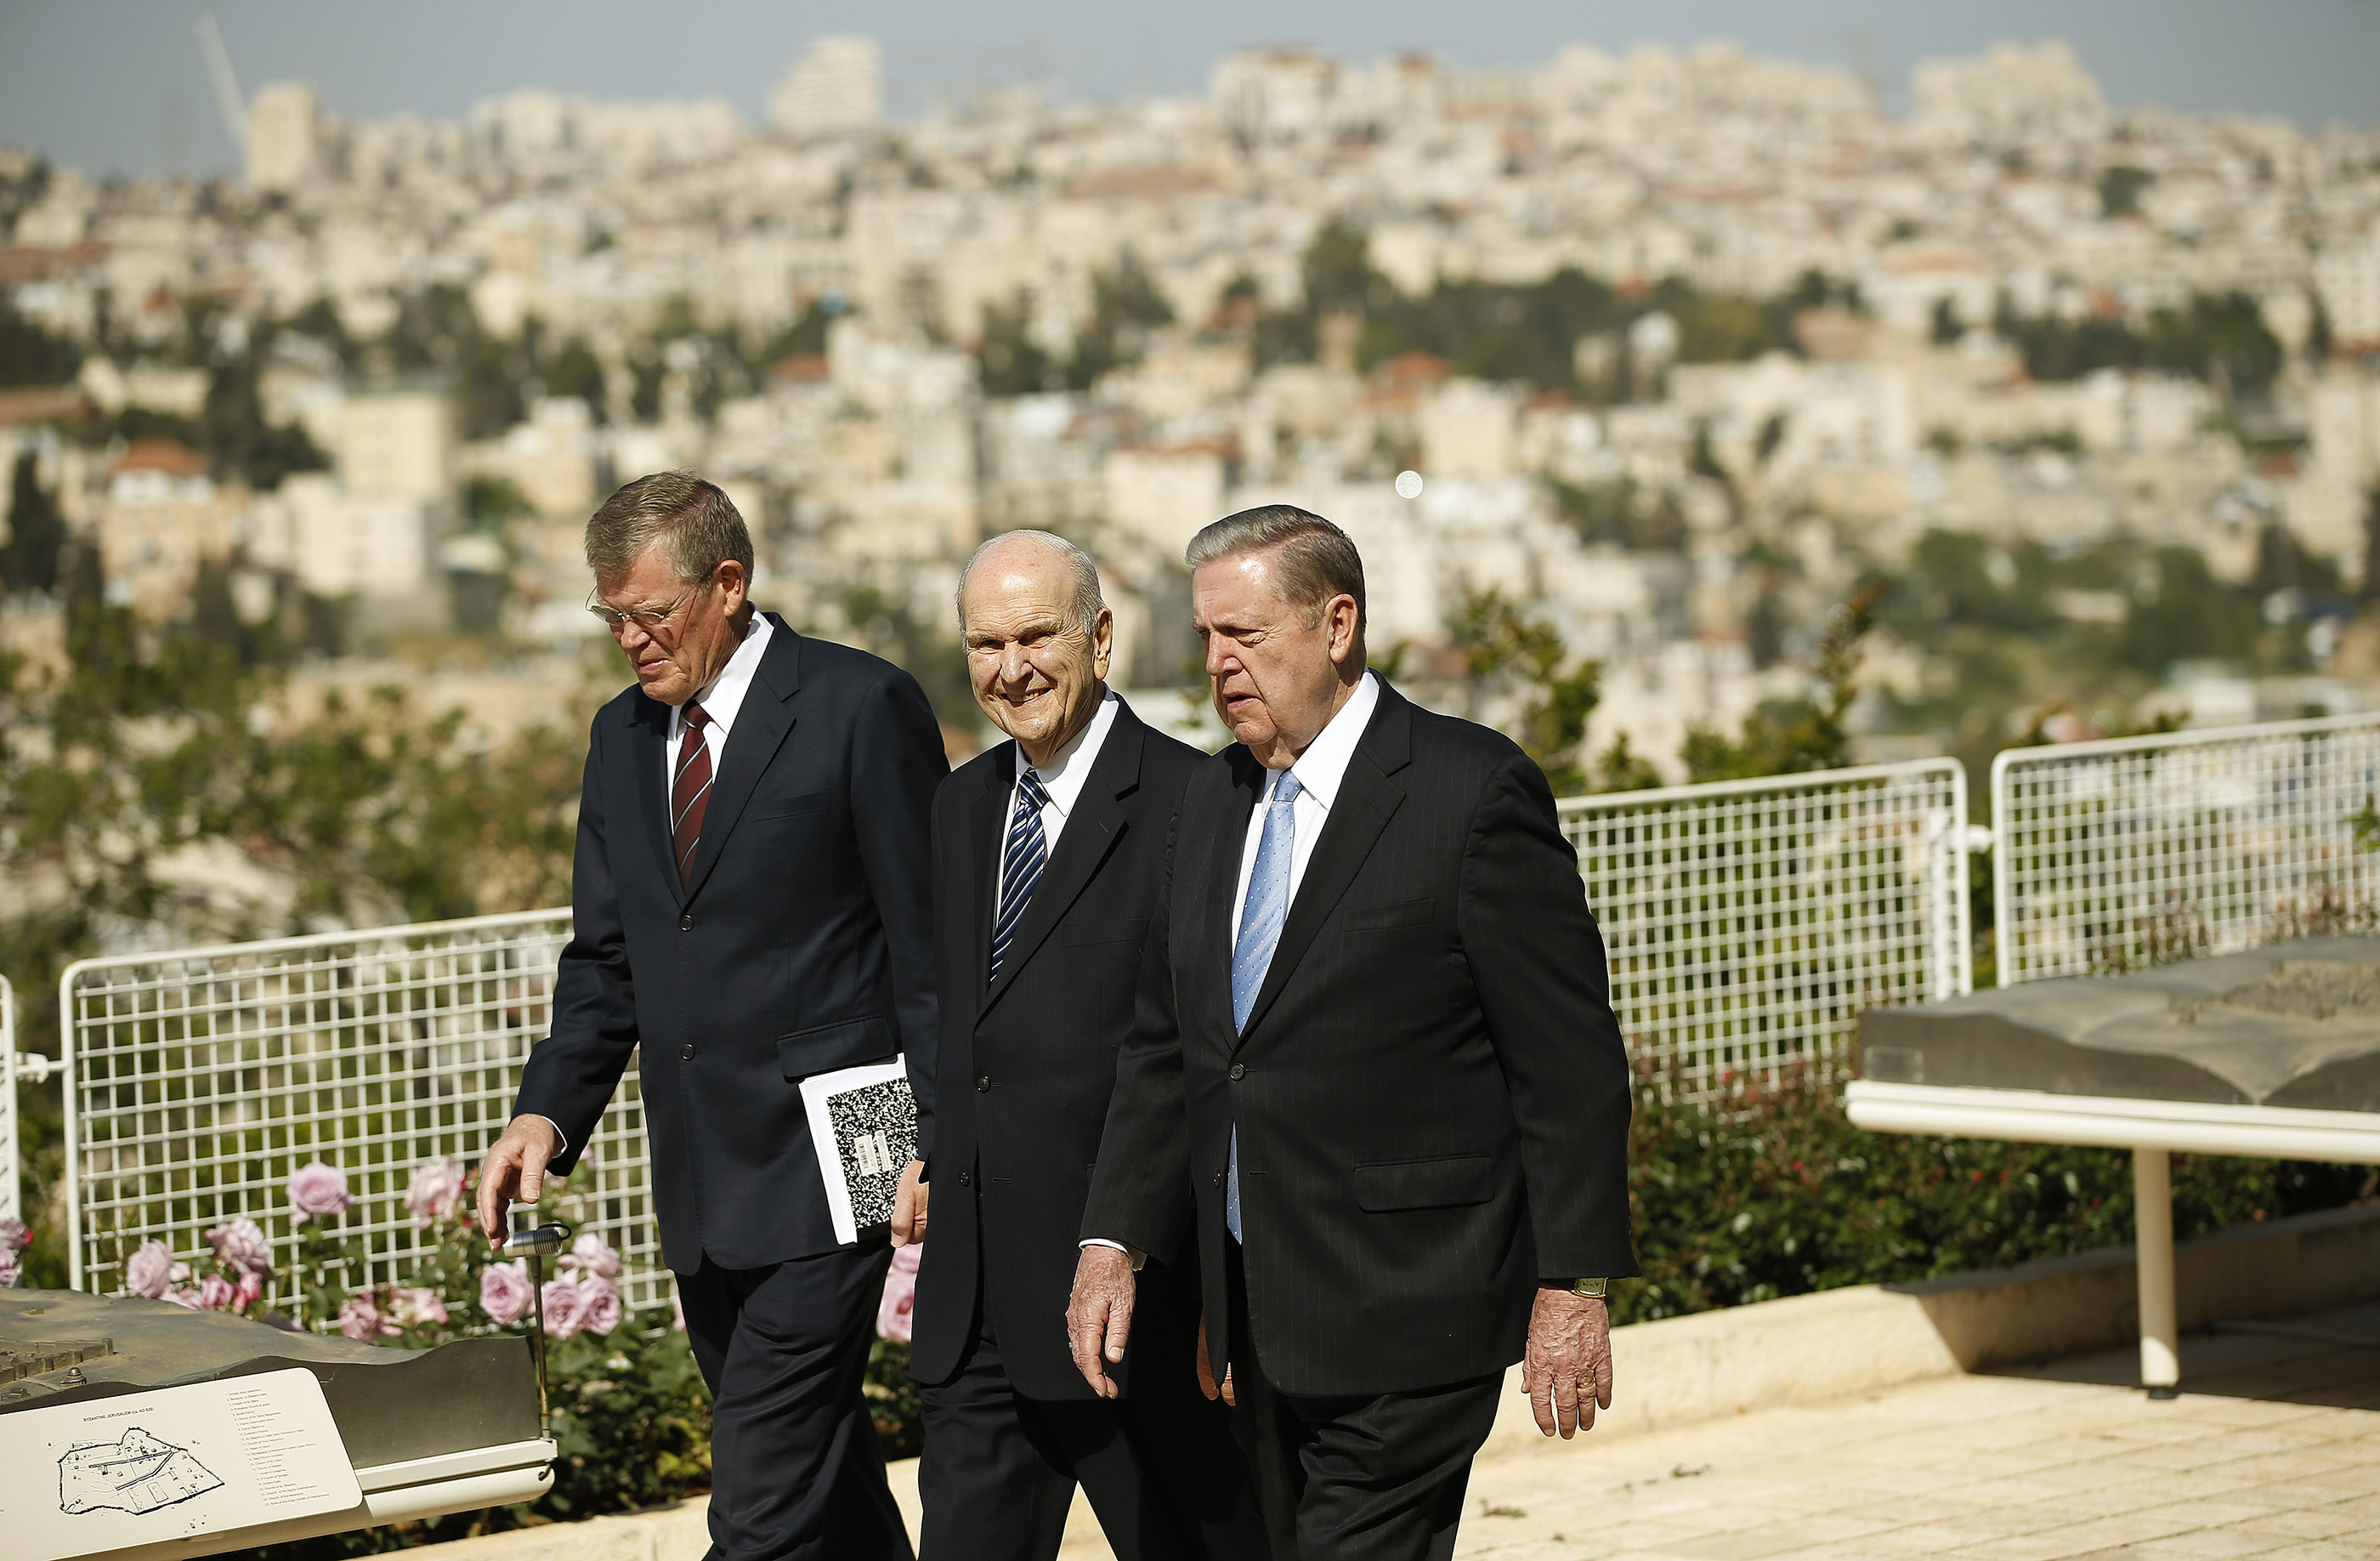 President Russell M. Nelson, center, Elder Jeffrey R. Holland, Quorum of the Twelve Apostles, right, along with District President Dennis Brimhall walk at the BYU Jerusalem Center in Jerusalem on Saturday, April 14, 2018. Nelson is on a global tour of eight countries.